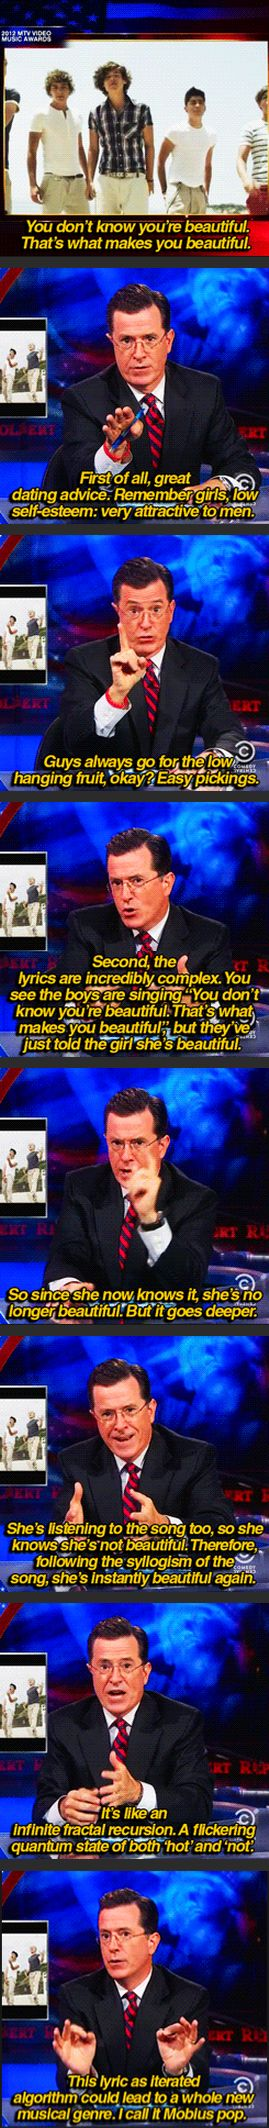 Stephen Colbert On The Complexity Of One Direction's Lyrics. This is one funny man.